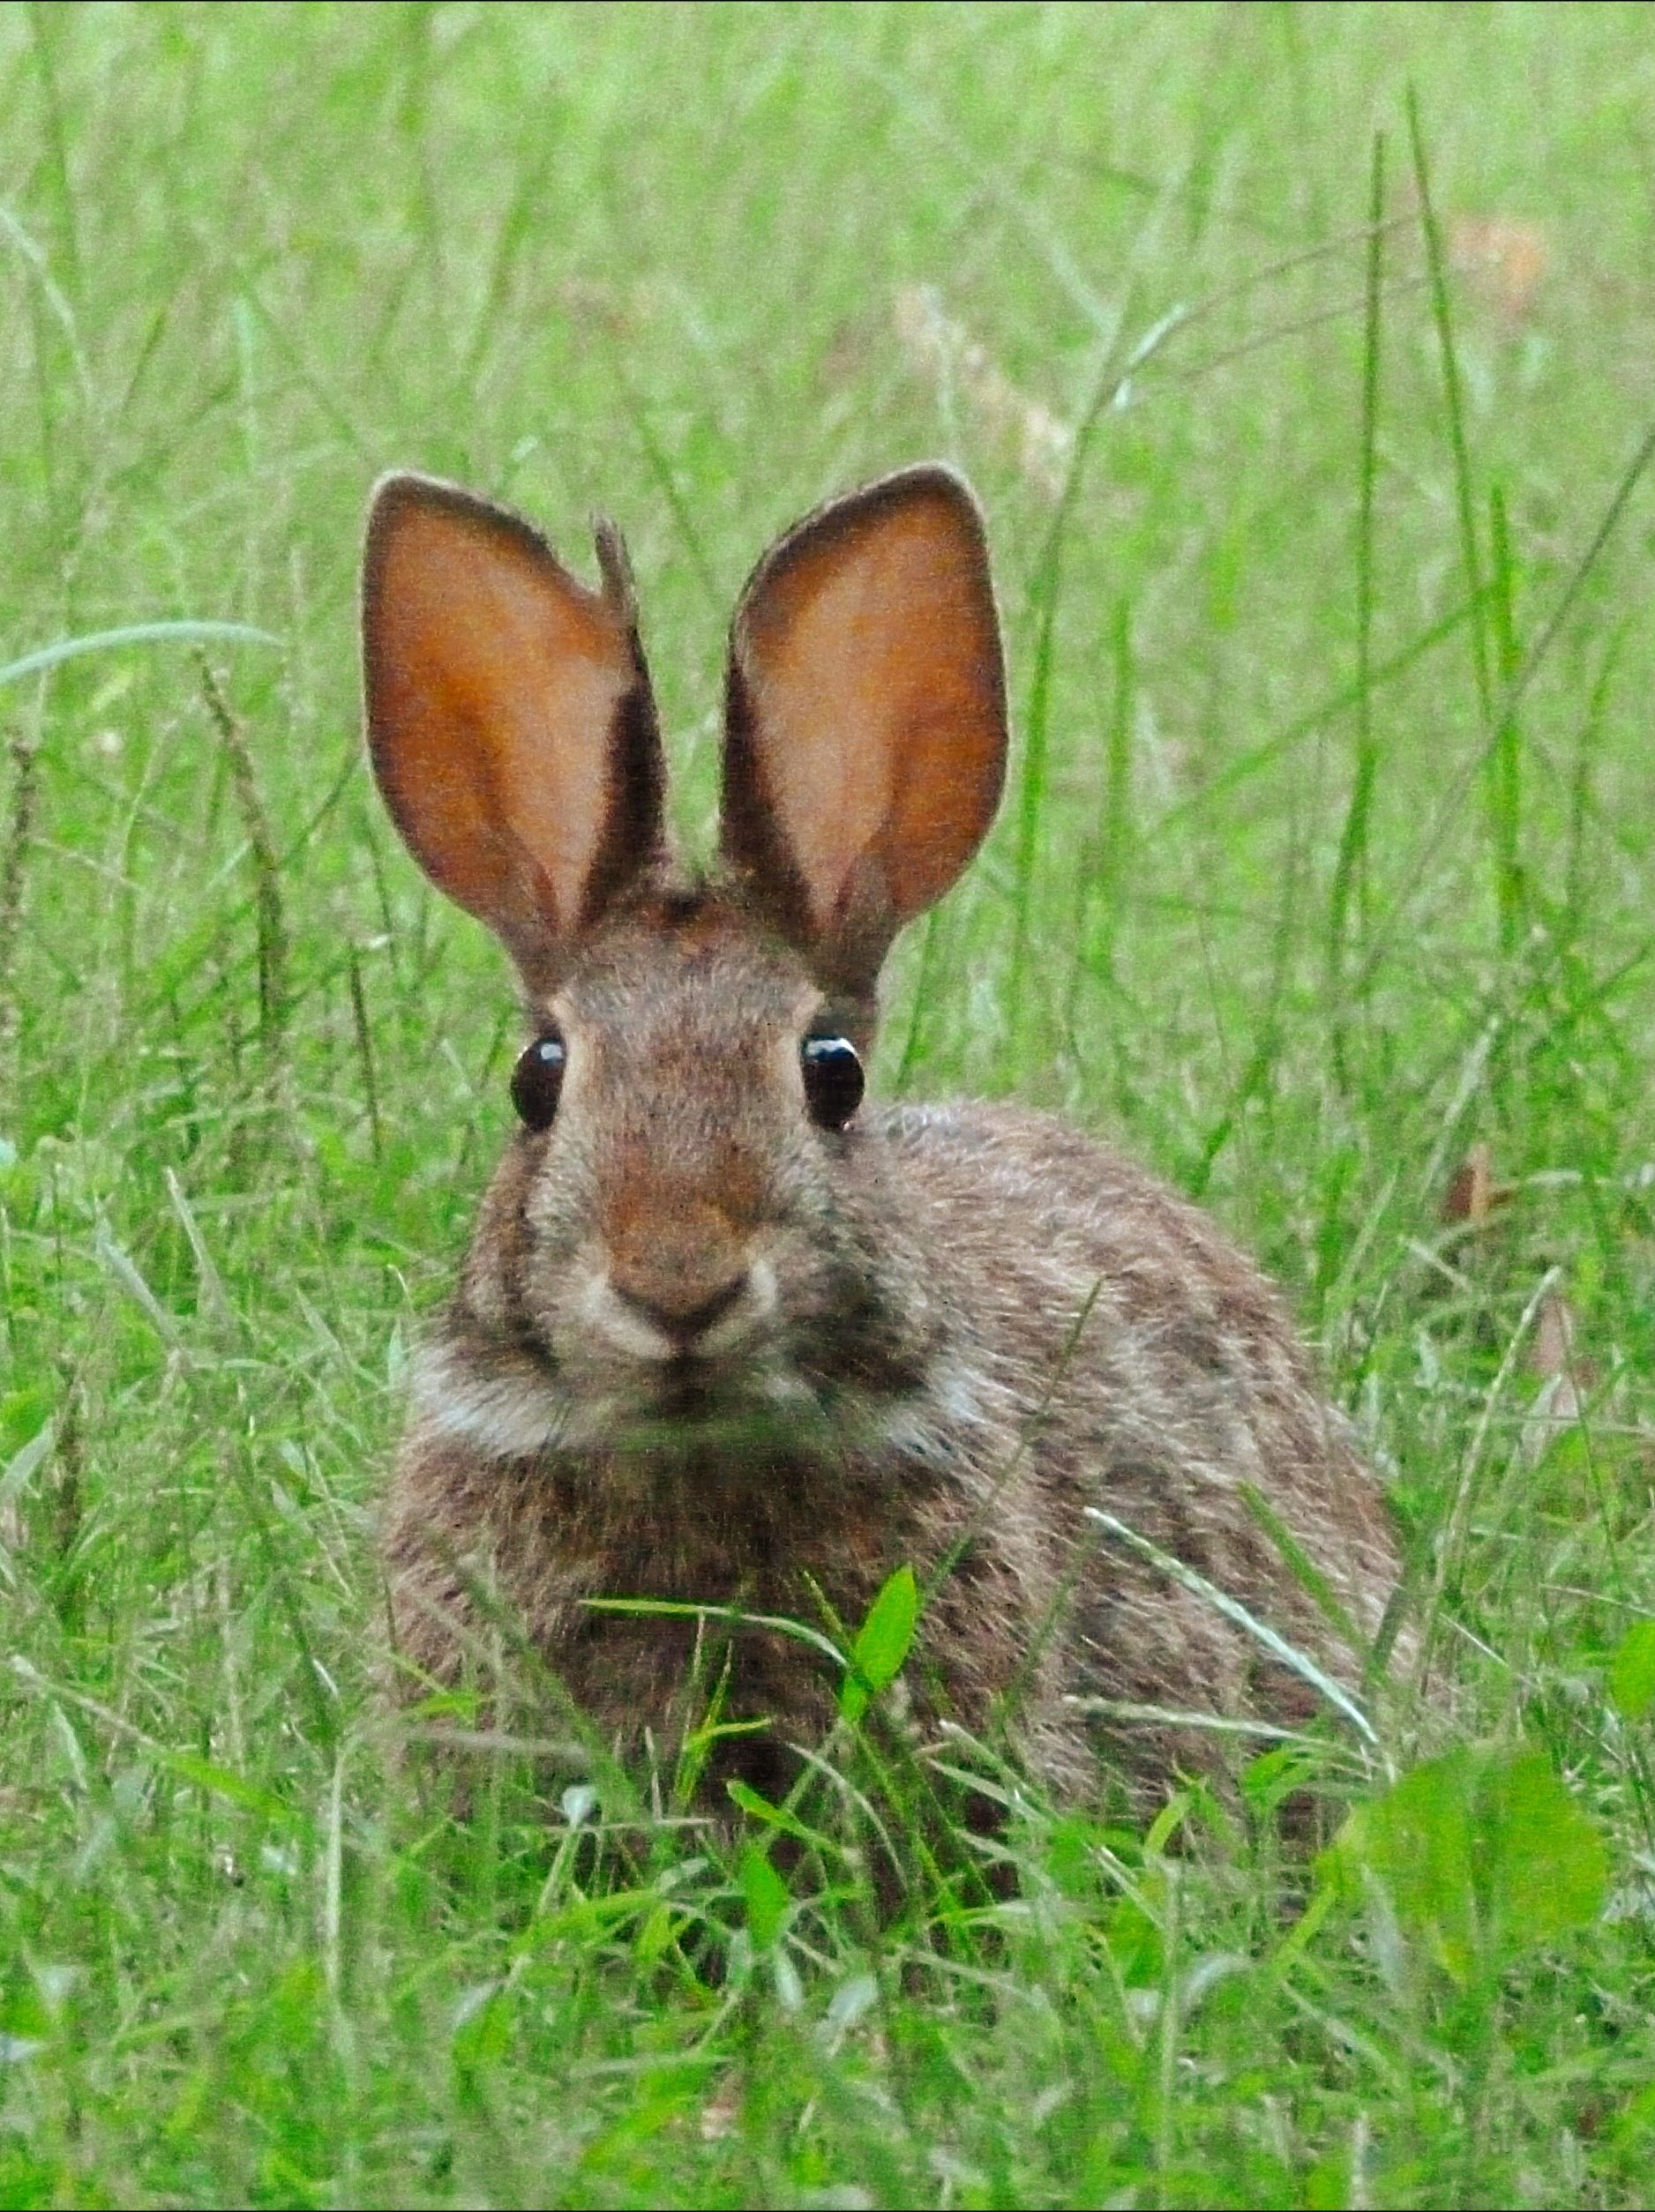 Hinky My Eastern Cottontail Rabbit Friend He S So Cute